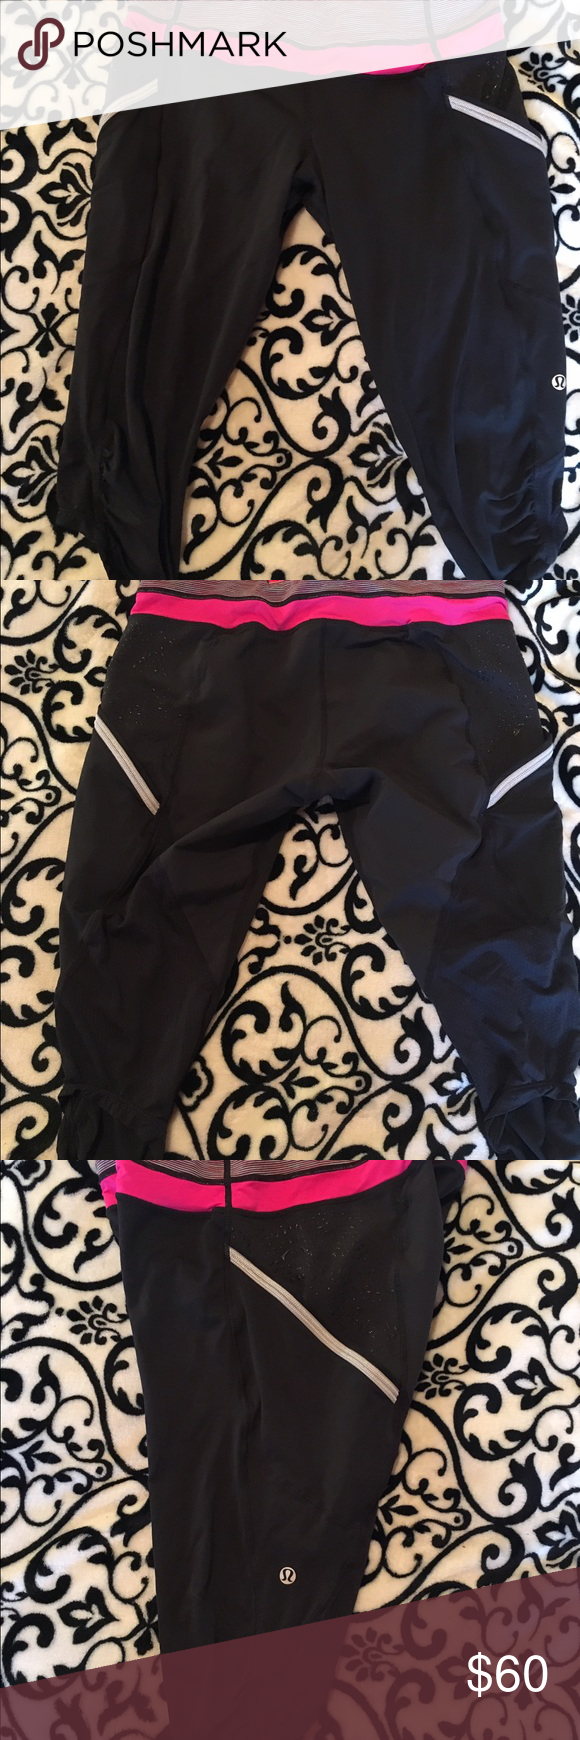 "Lululemon- crops size 6. Awesome active wear. These are fabulous active wear crops. Made by Lululemon. Size 6, crop fit. Inside tag has been removed but I am positive they are size 6.  Worn a handful of times. They have reflective specks on both legs and pockets for a phone, iPod etc....a zipper pocket on the back... I love the look but I prefer longer pants since I live where it is very cold. They measure from top of the waist to the bottom of the leg about 23"" laying flat on my bed…"